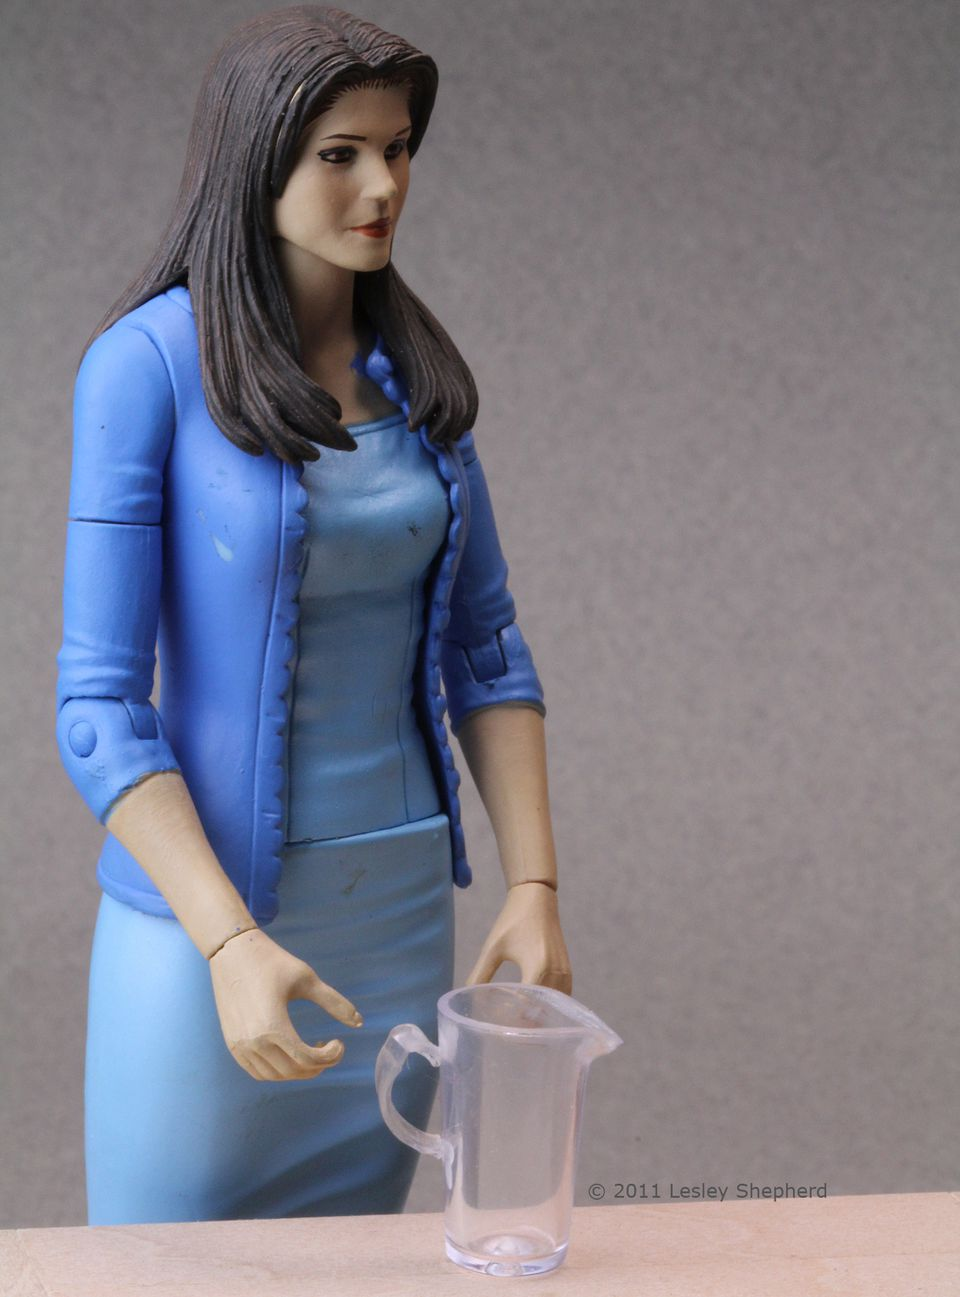 Six inch plastic action figure shown with a miniature dollhouse pitcher made from a pencil cap